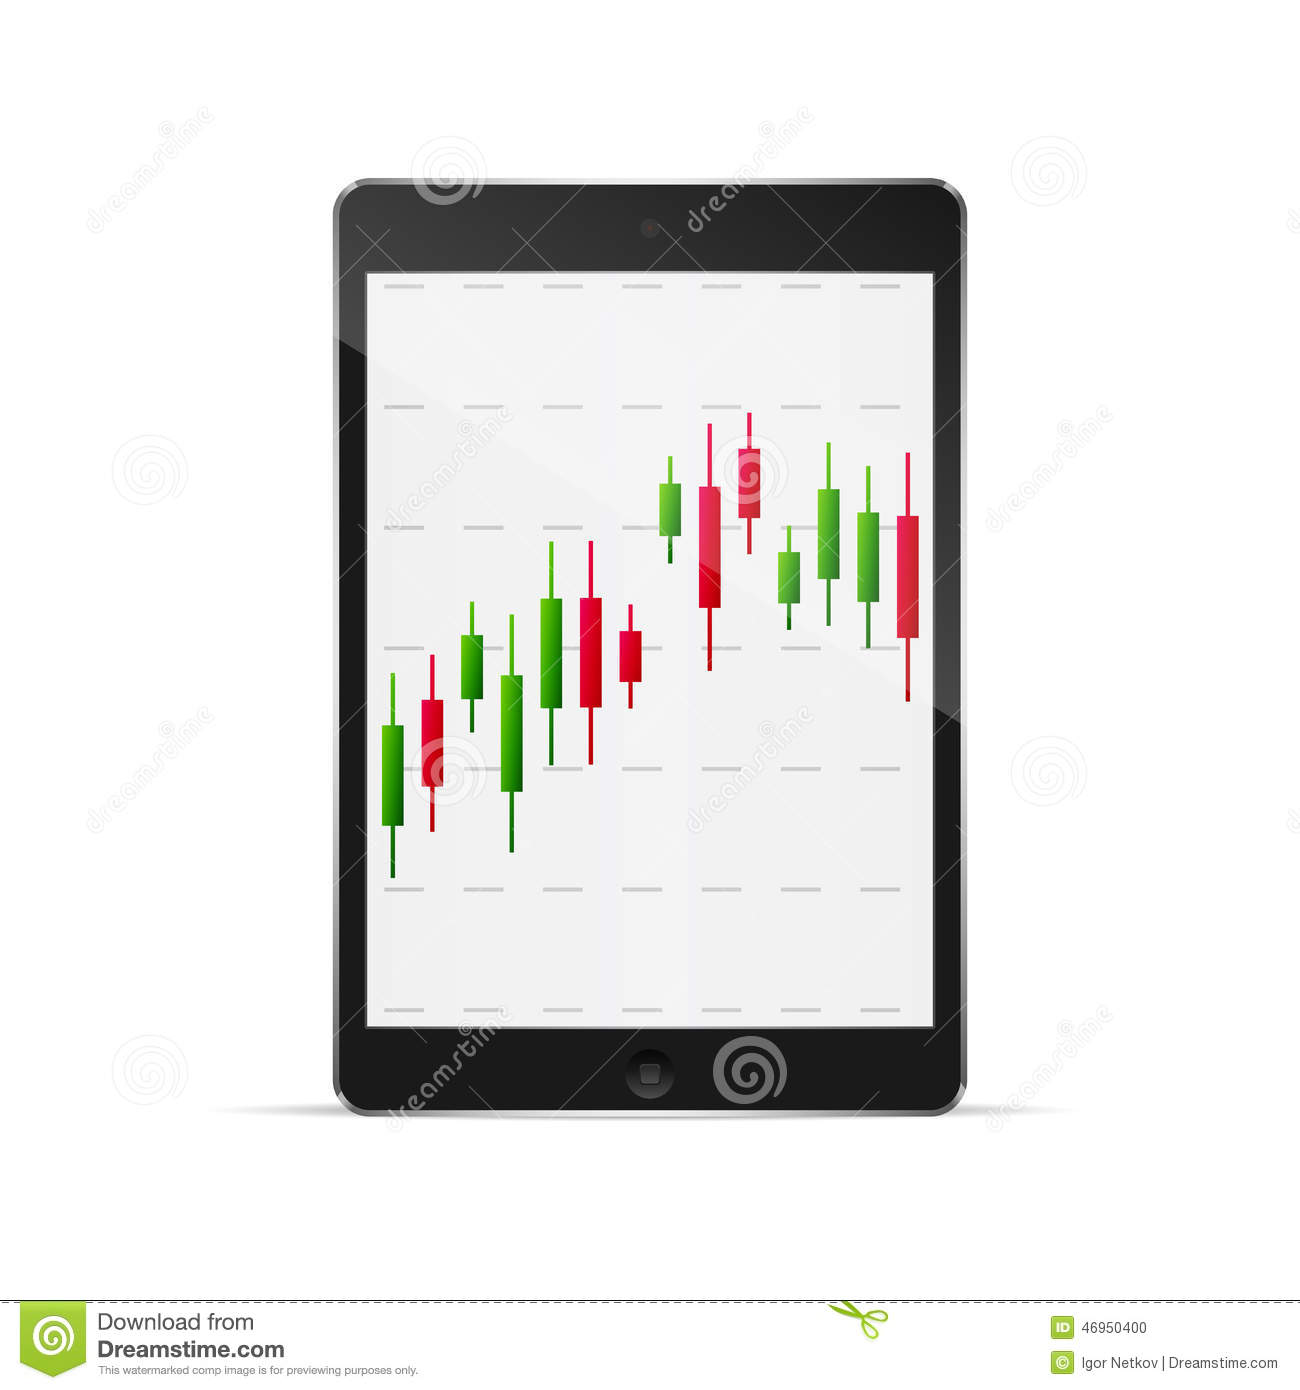 Trading forex on ipad